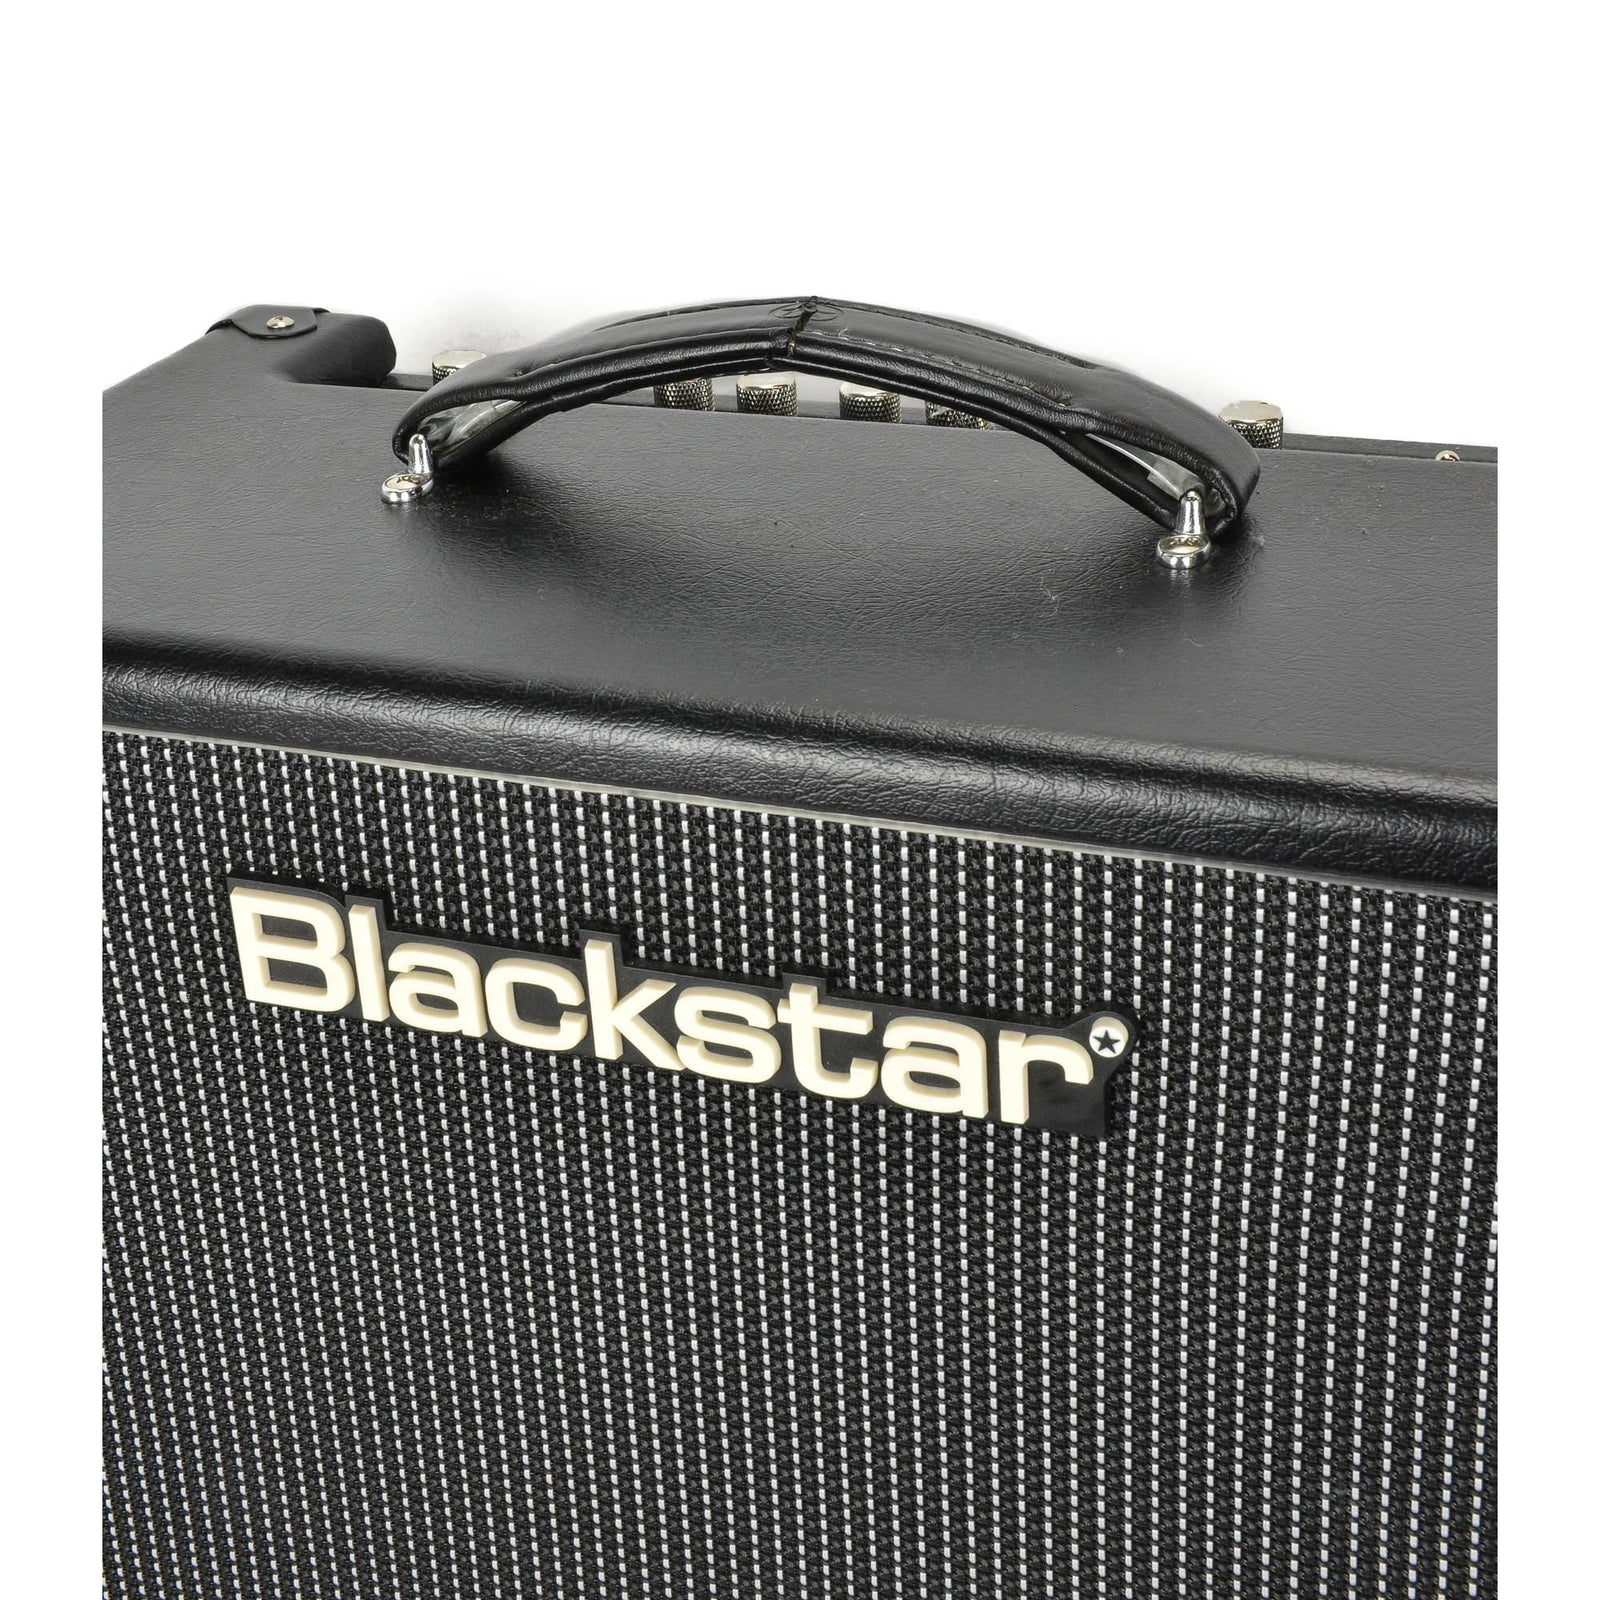 Blackstar HT-5R 5 Watt Combo - Used